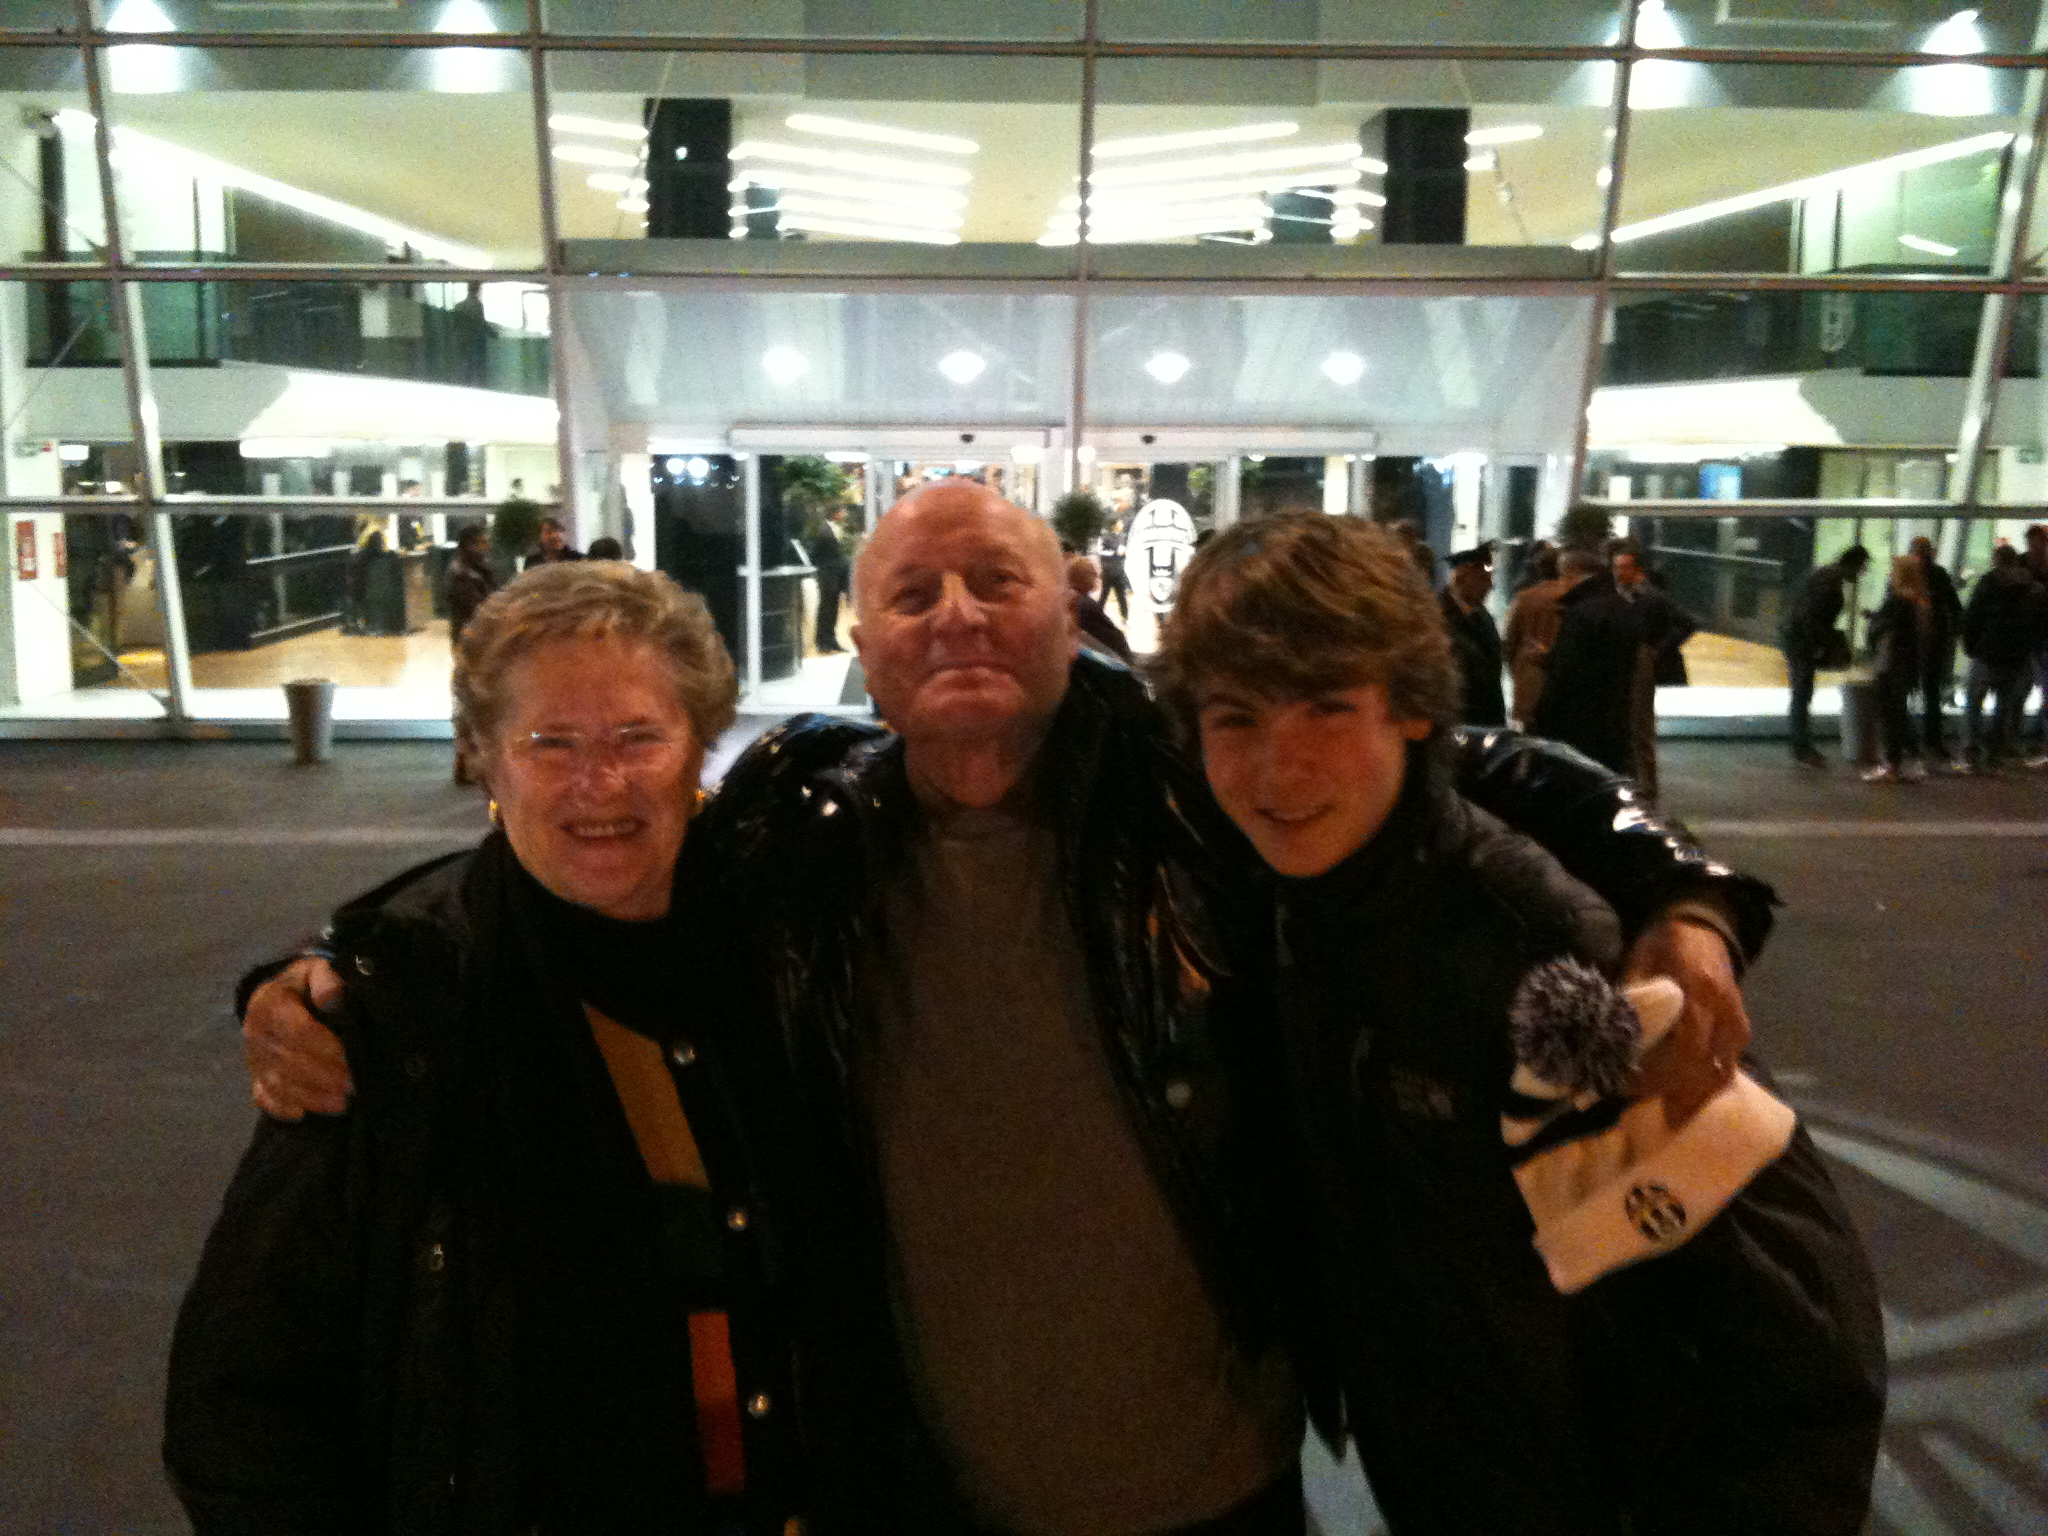 My Nonno Carlo, Nonna Italia, and me in front of the Juventus Stadium (my favorite soccer team).